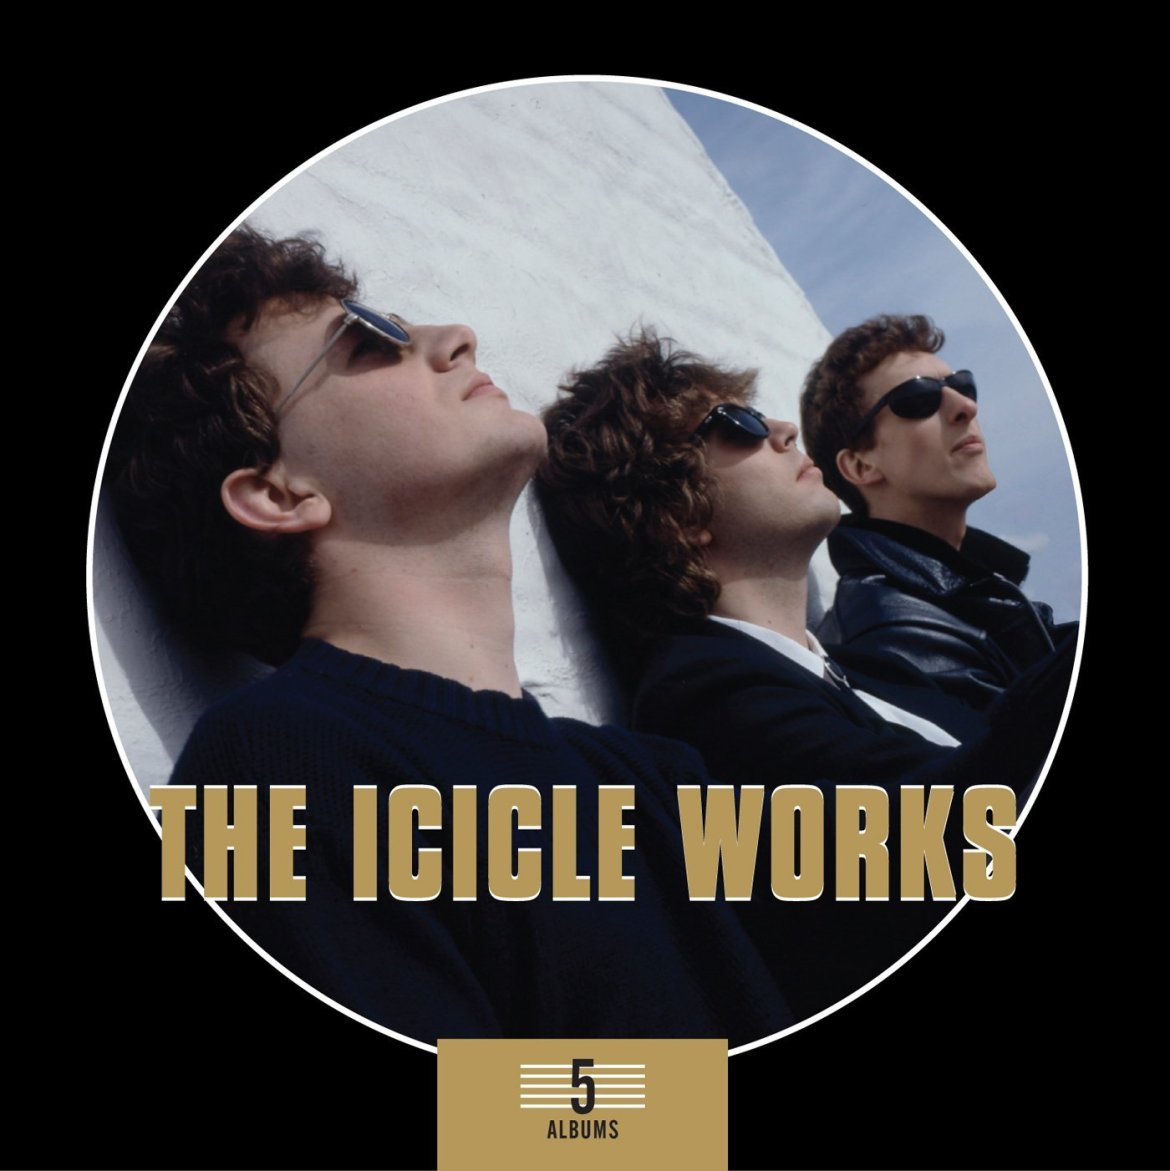 The absolute Works: The Icicle Works 5 albums box set